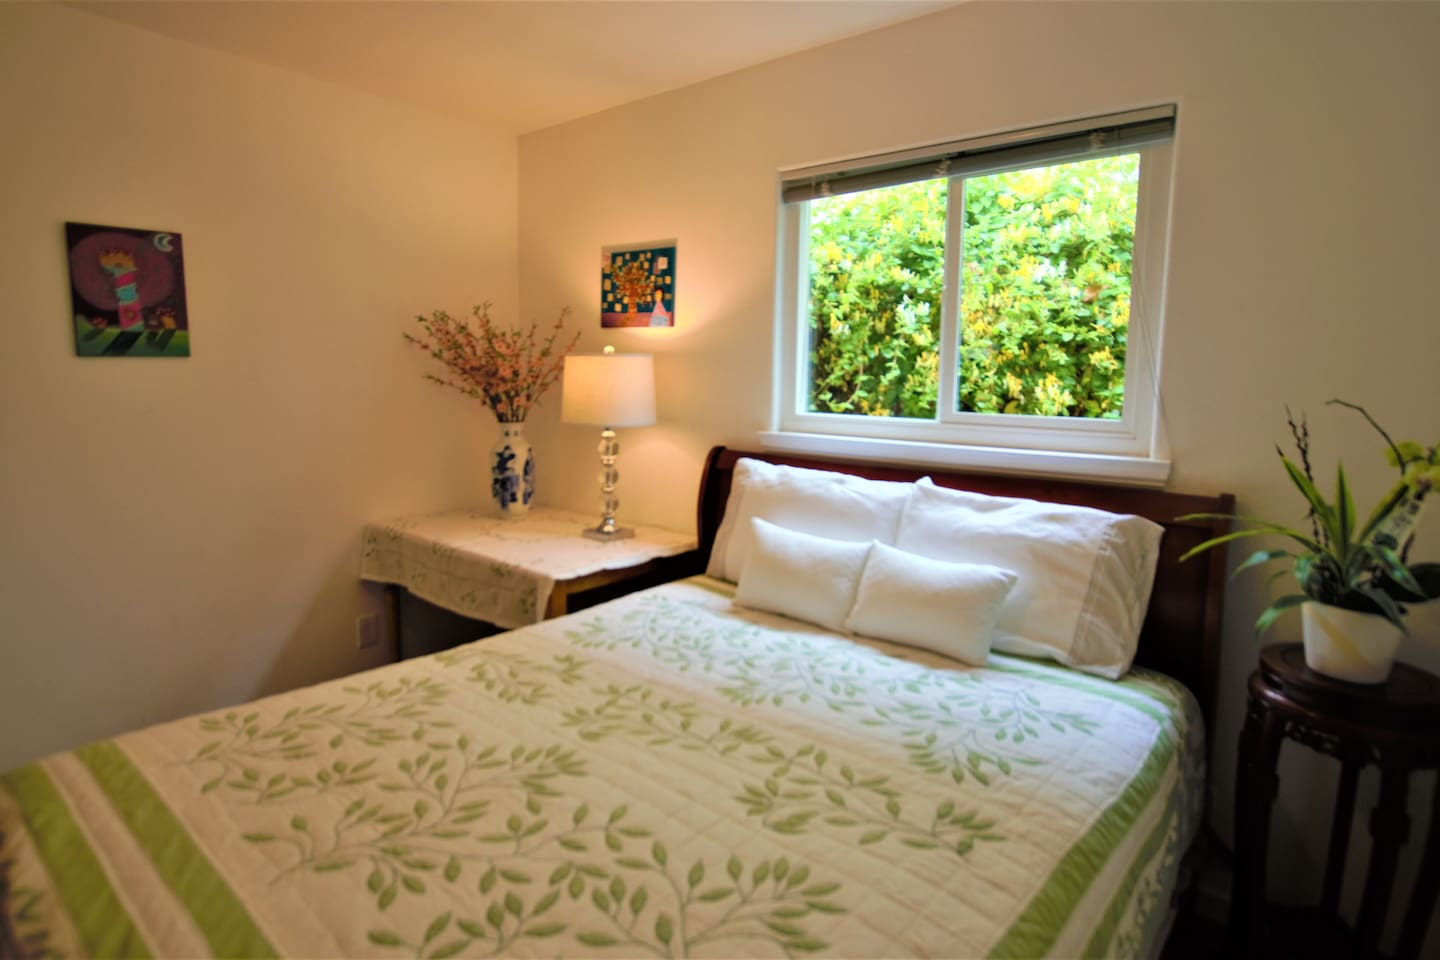 3rd bedroom, with a equally comfortable queen bed and a standard size closet. of course, guests get a view of the nature!